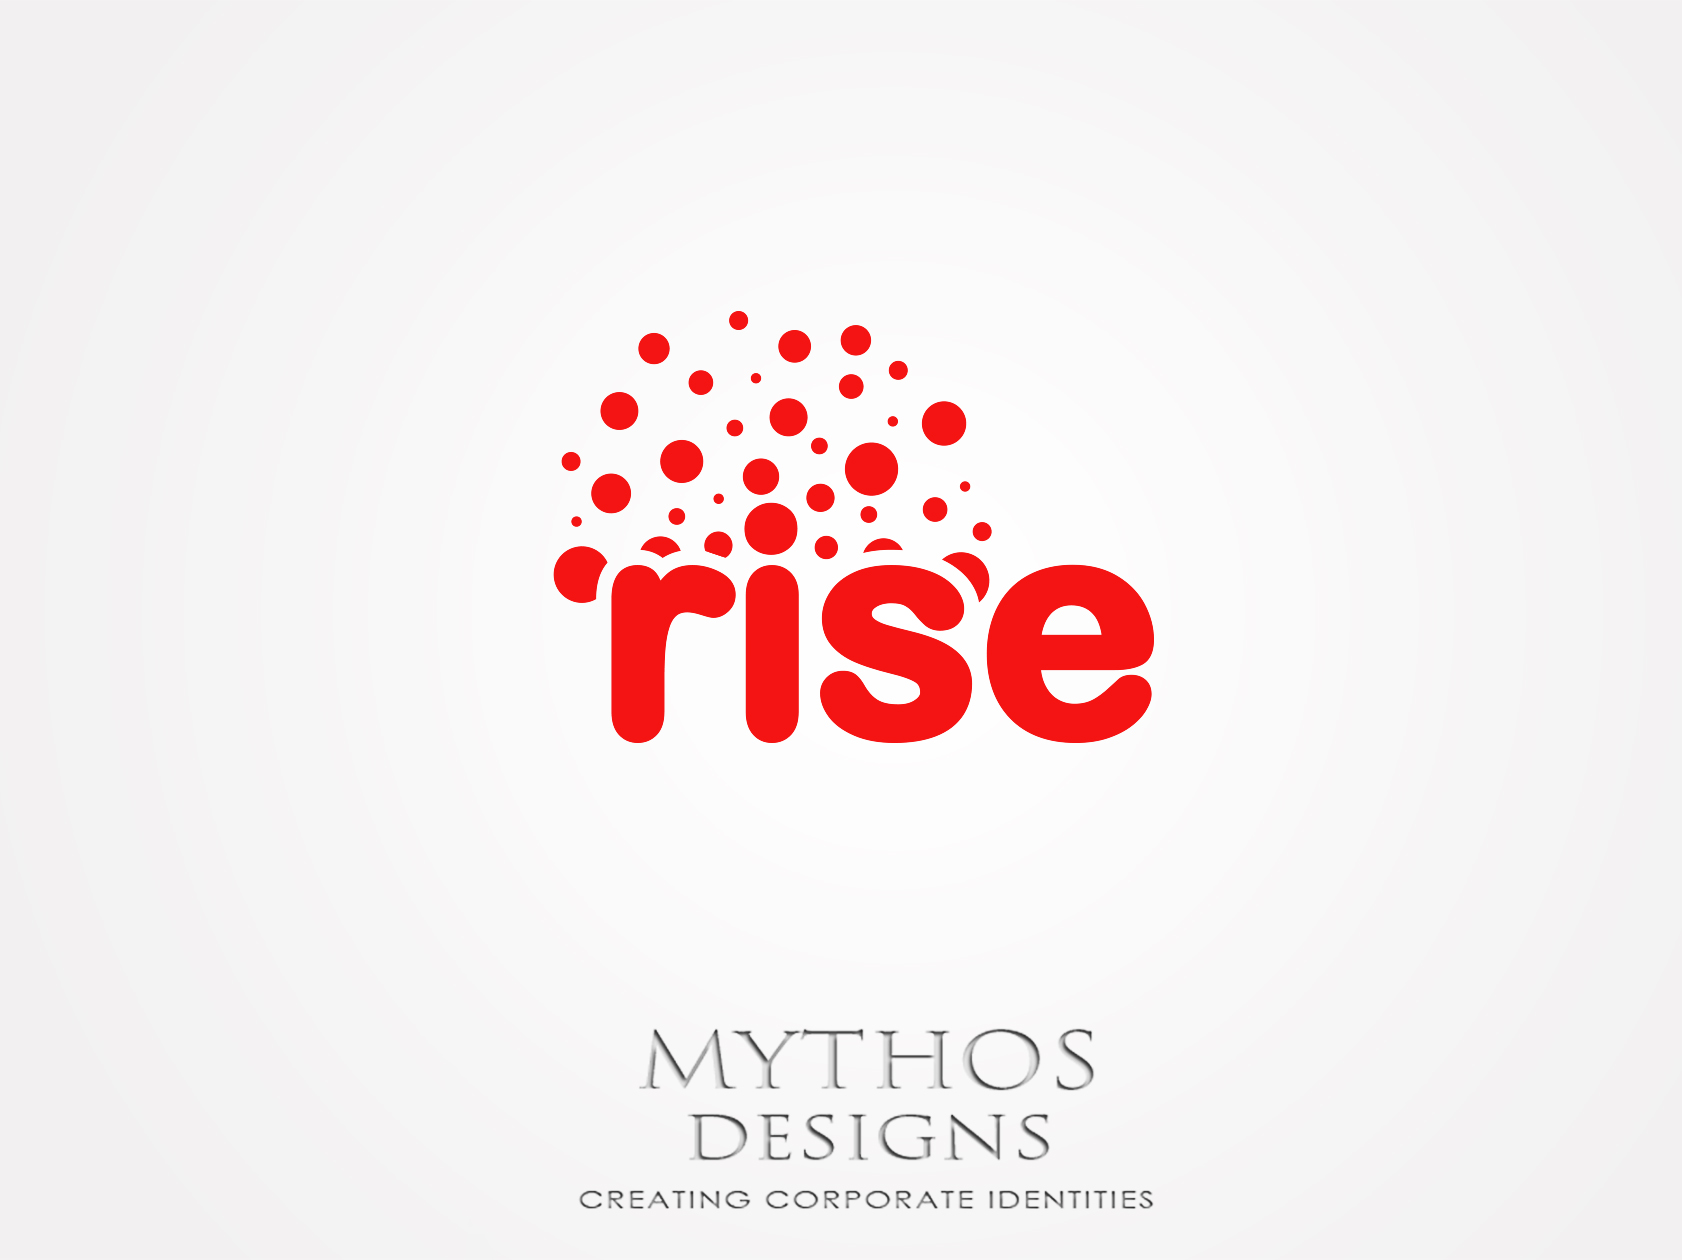 Logo Design by Mythos Designs - Entry No. 161 in the Logo Design Contest Imaginative Logo Design for Rise Tutoring Service.